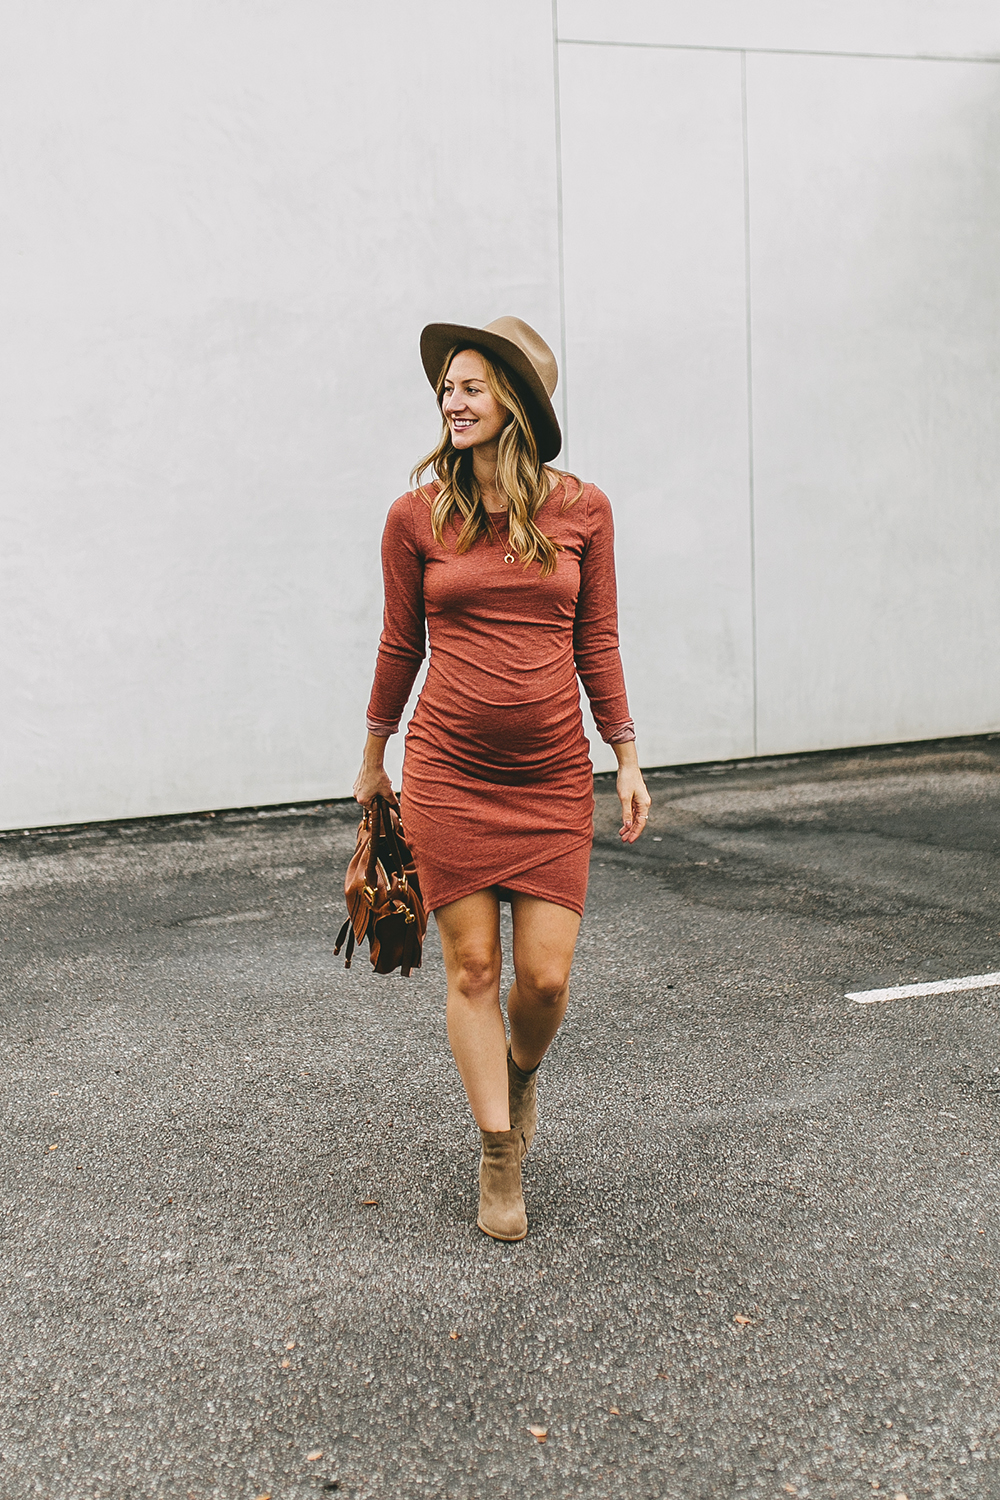 livvyland-blog-olivia-watson-austin-texas-fashion-style-blogger-bohemian-maternity-dress-cute-pregnancy-outfit-idea-5